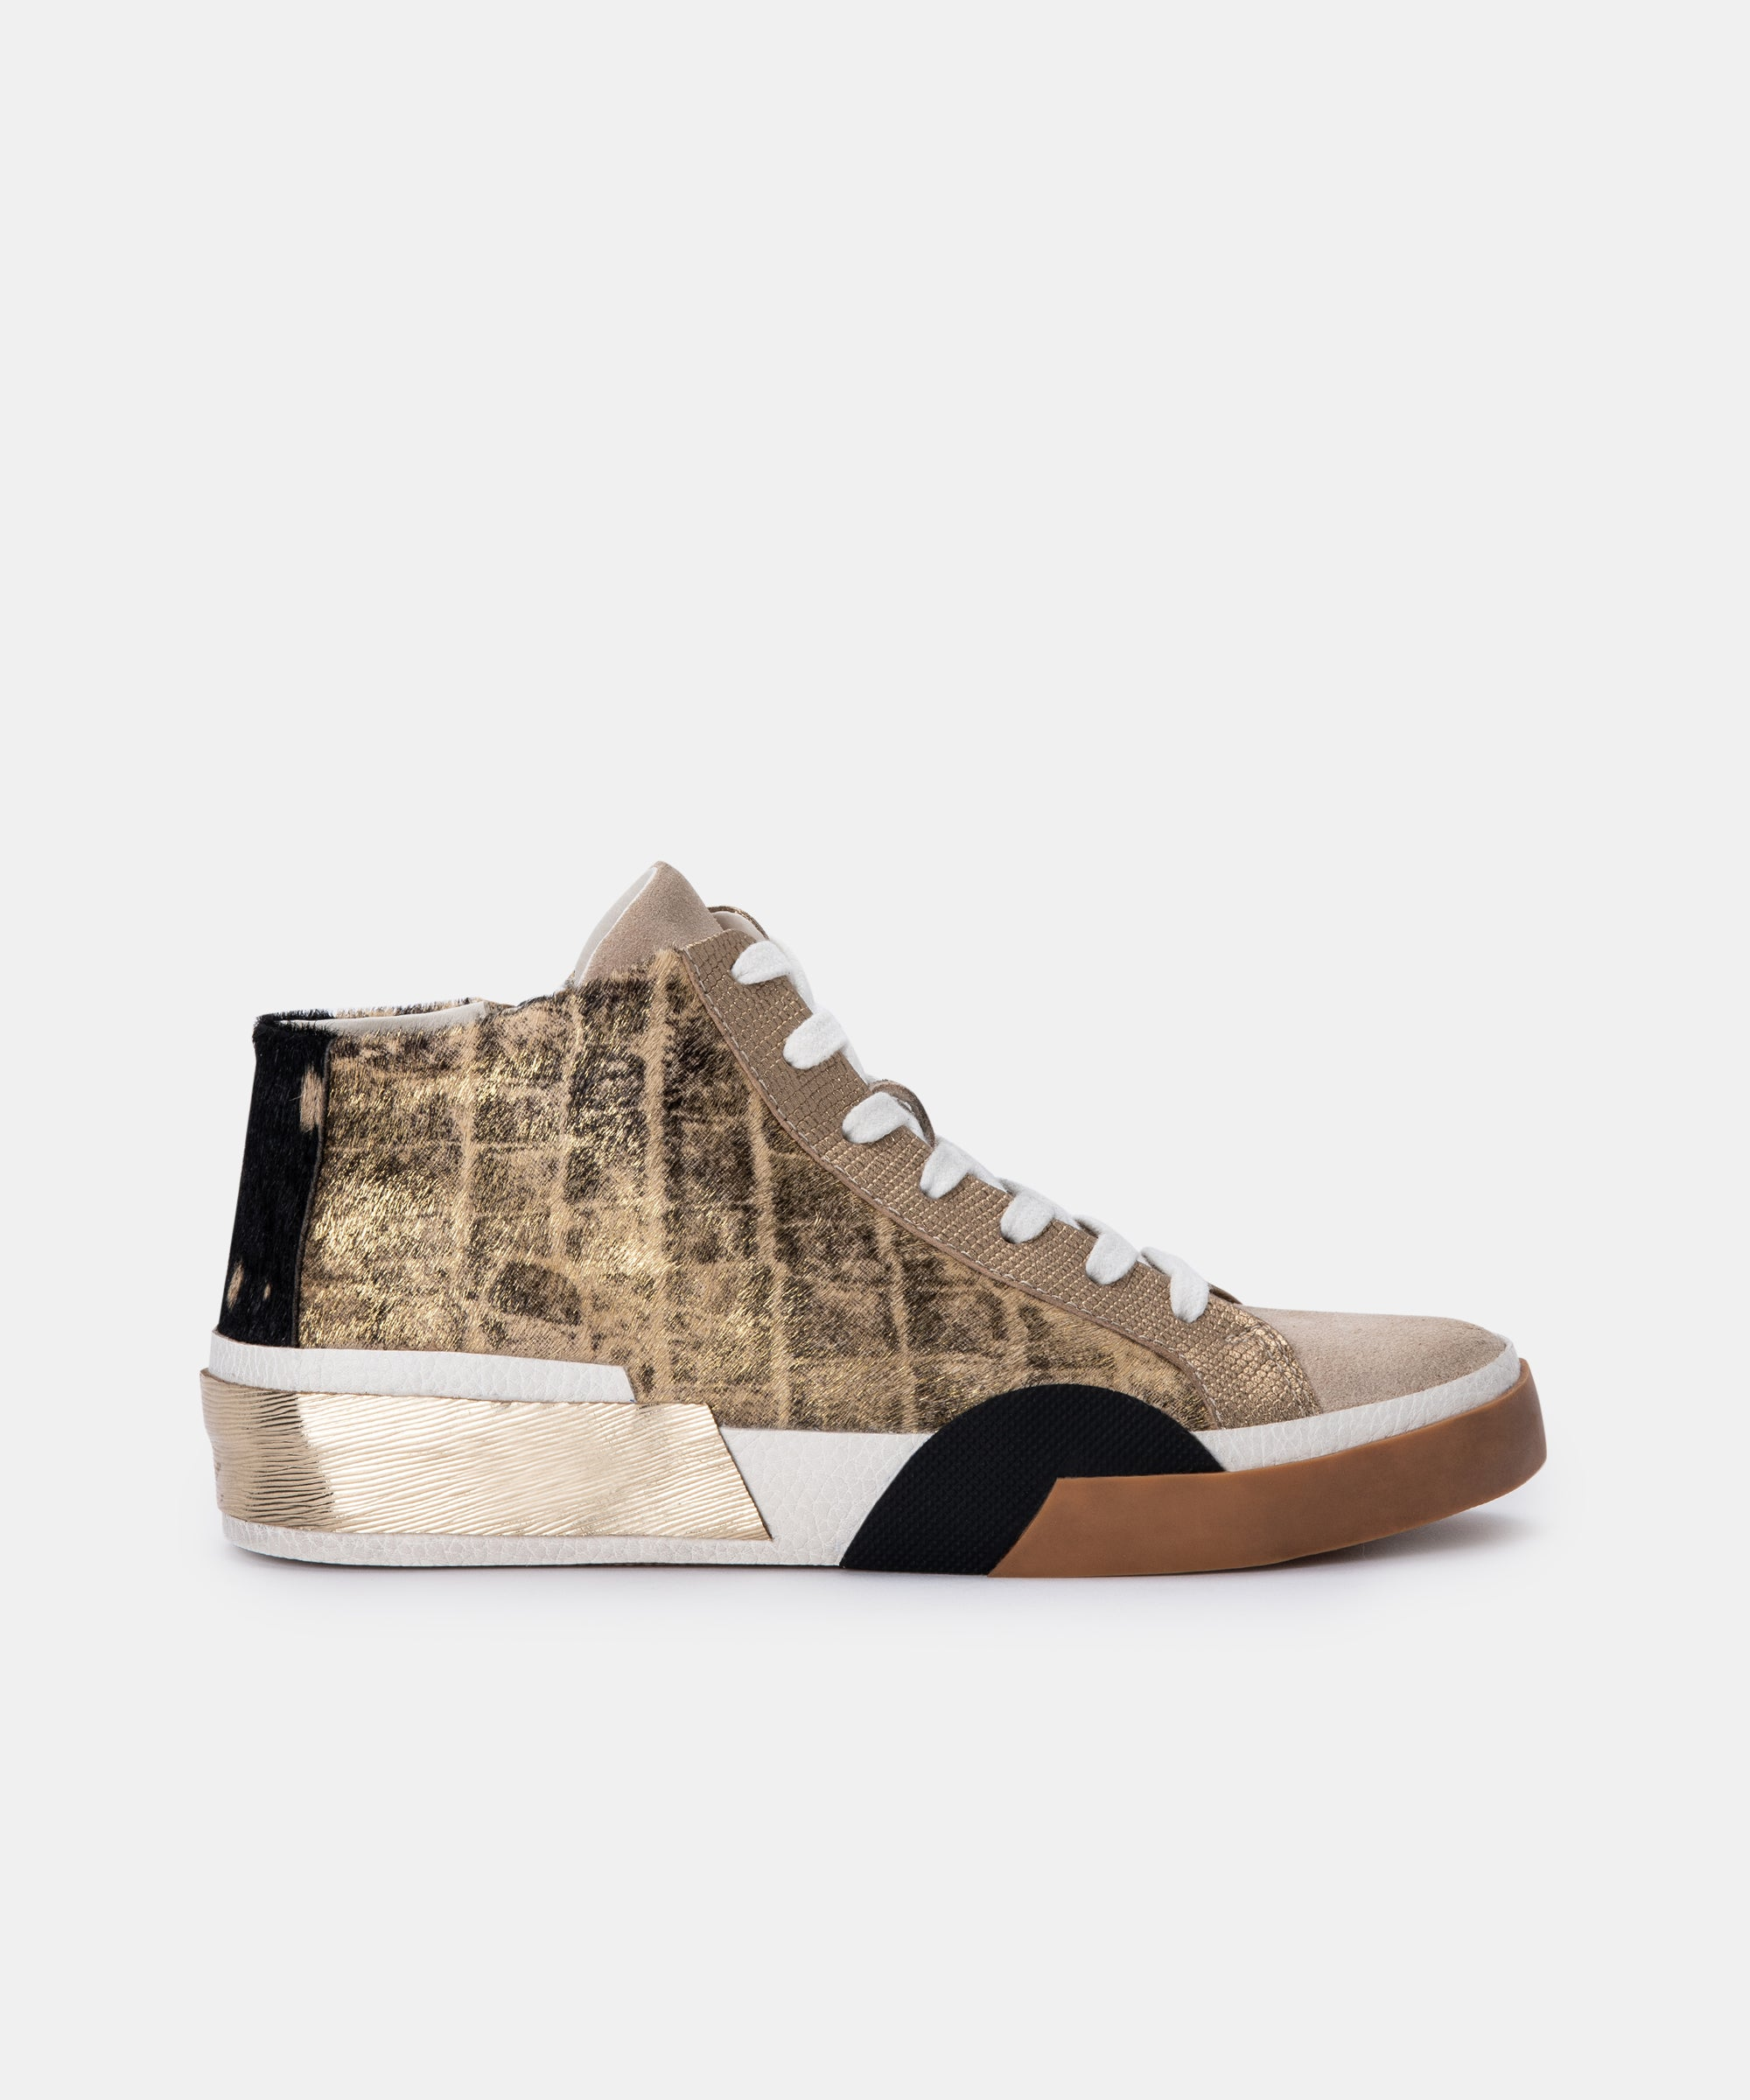 ZOEL SNEAKERS IN GOLD MULTI CALF HAIR